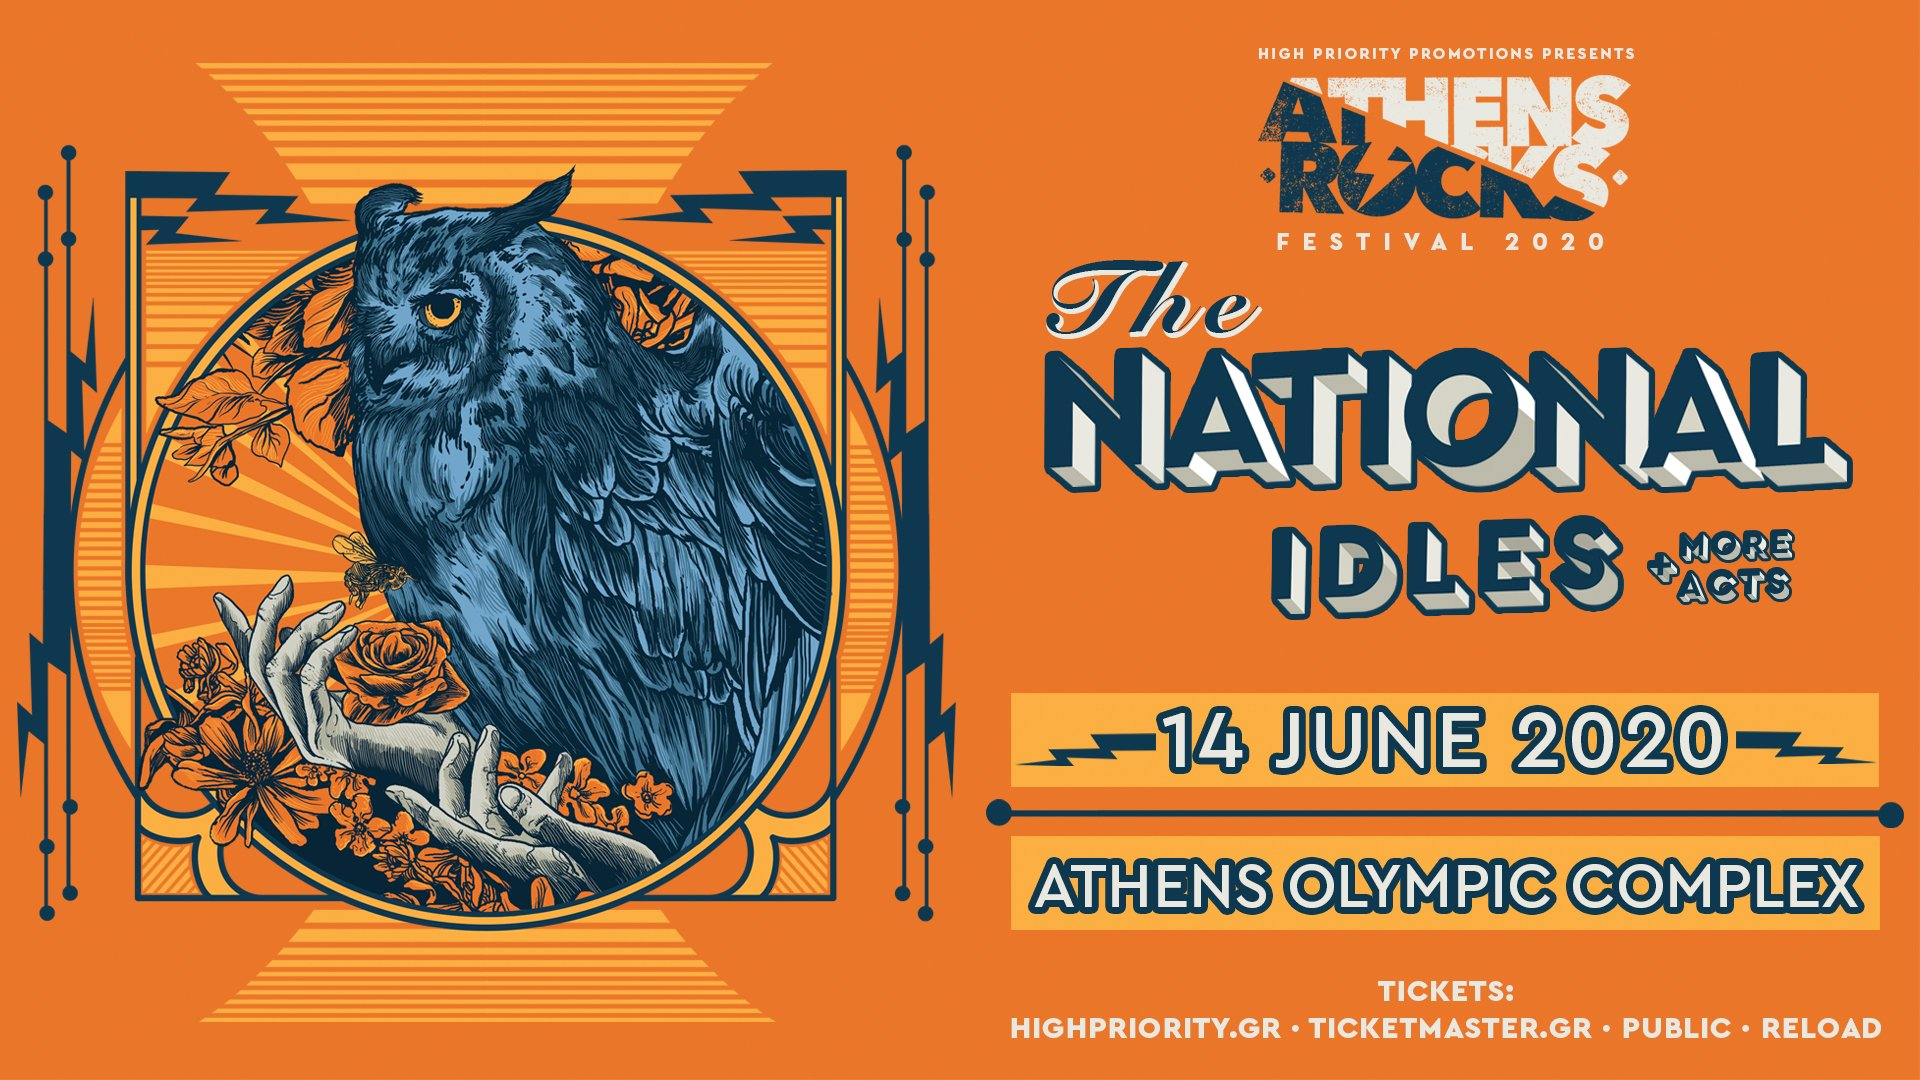 ATHENS_ROCK_NATIONAL1920X1080